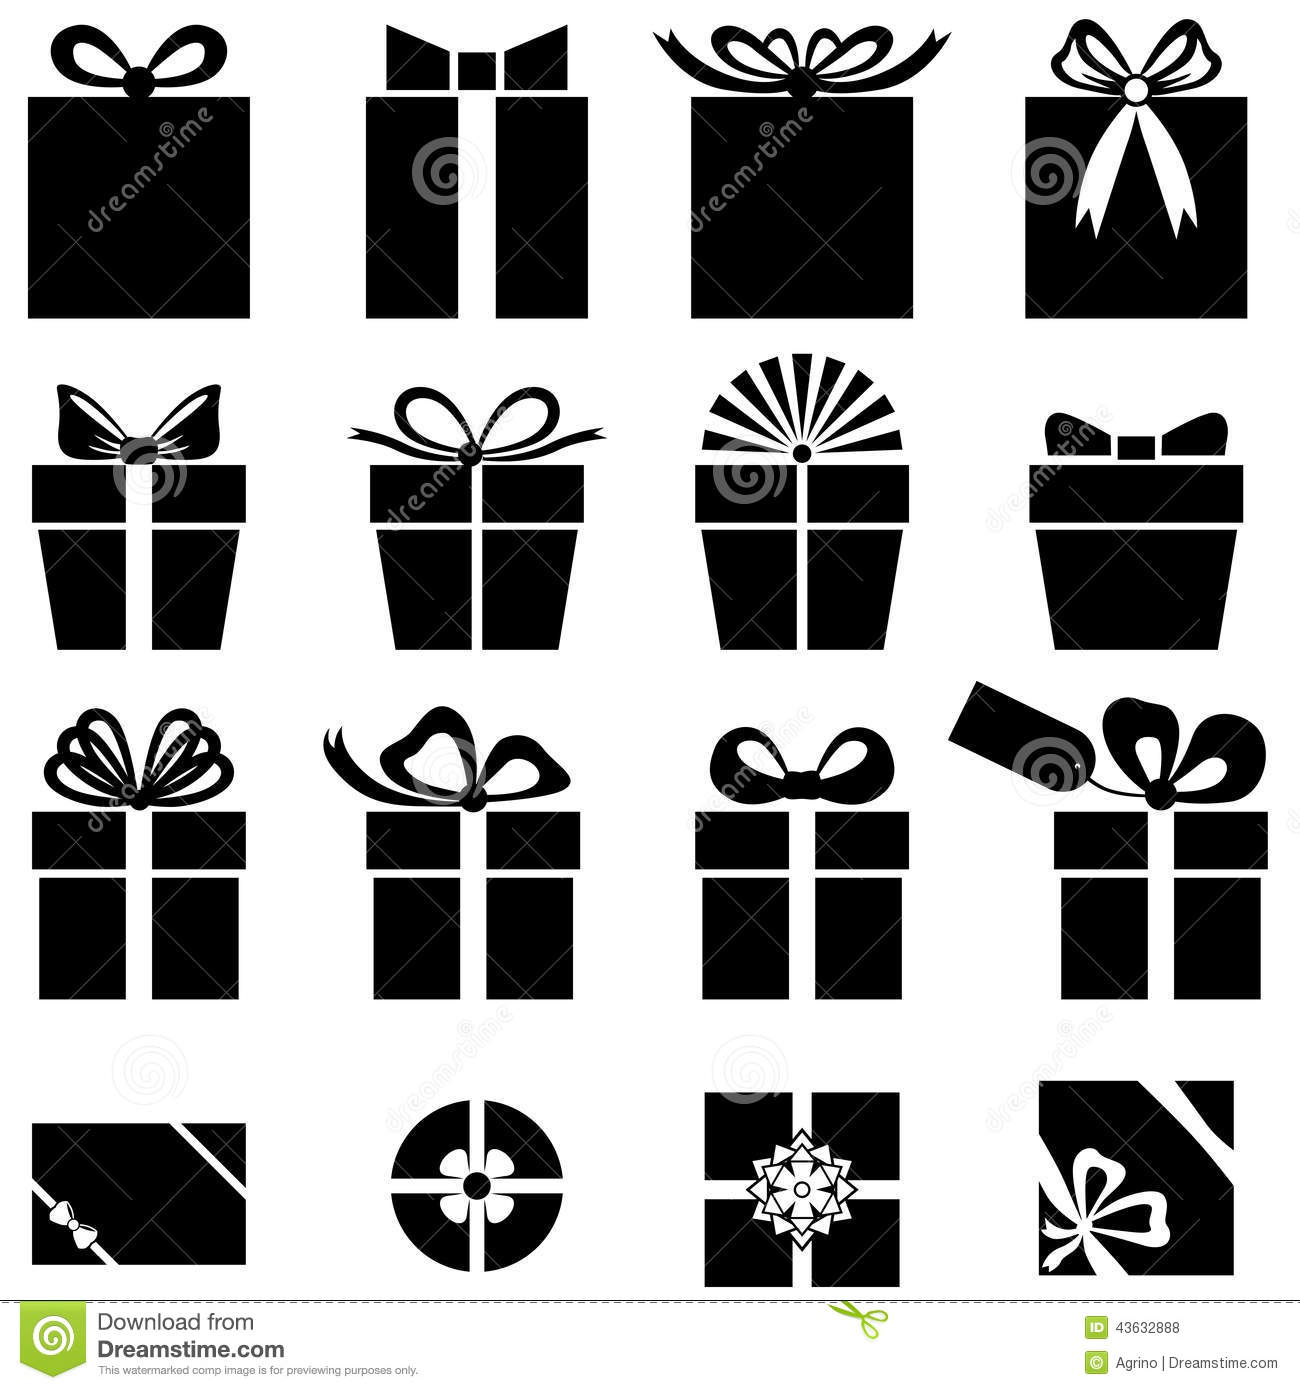 Set silhouette black-and-white image of gift icon.